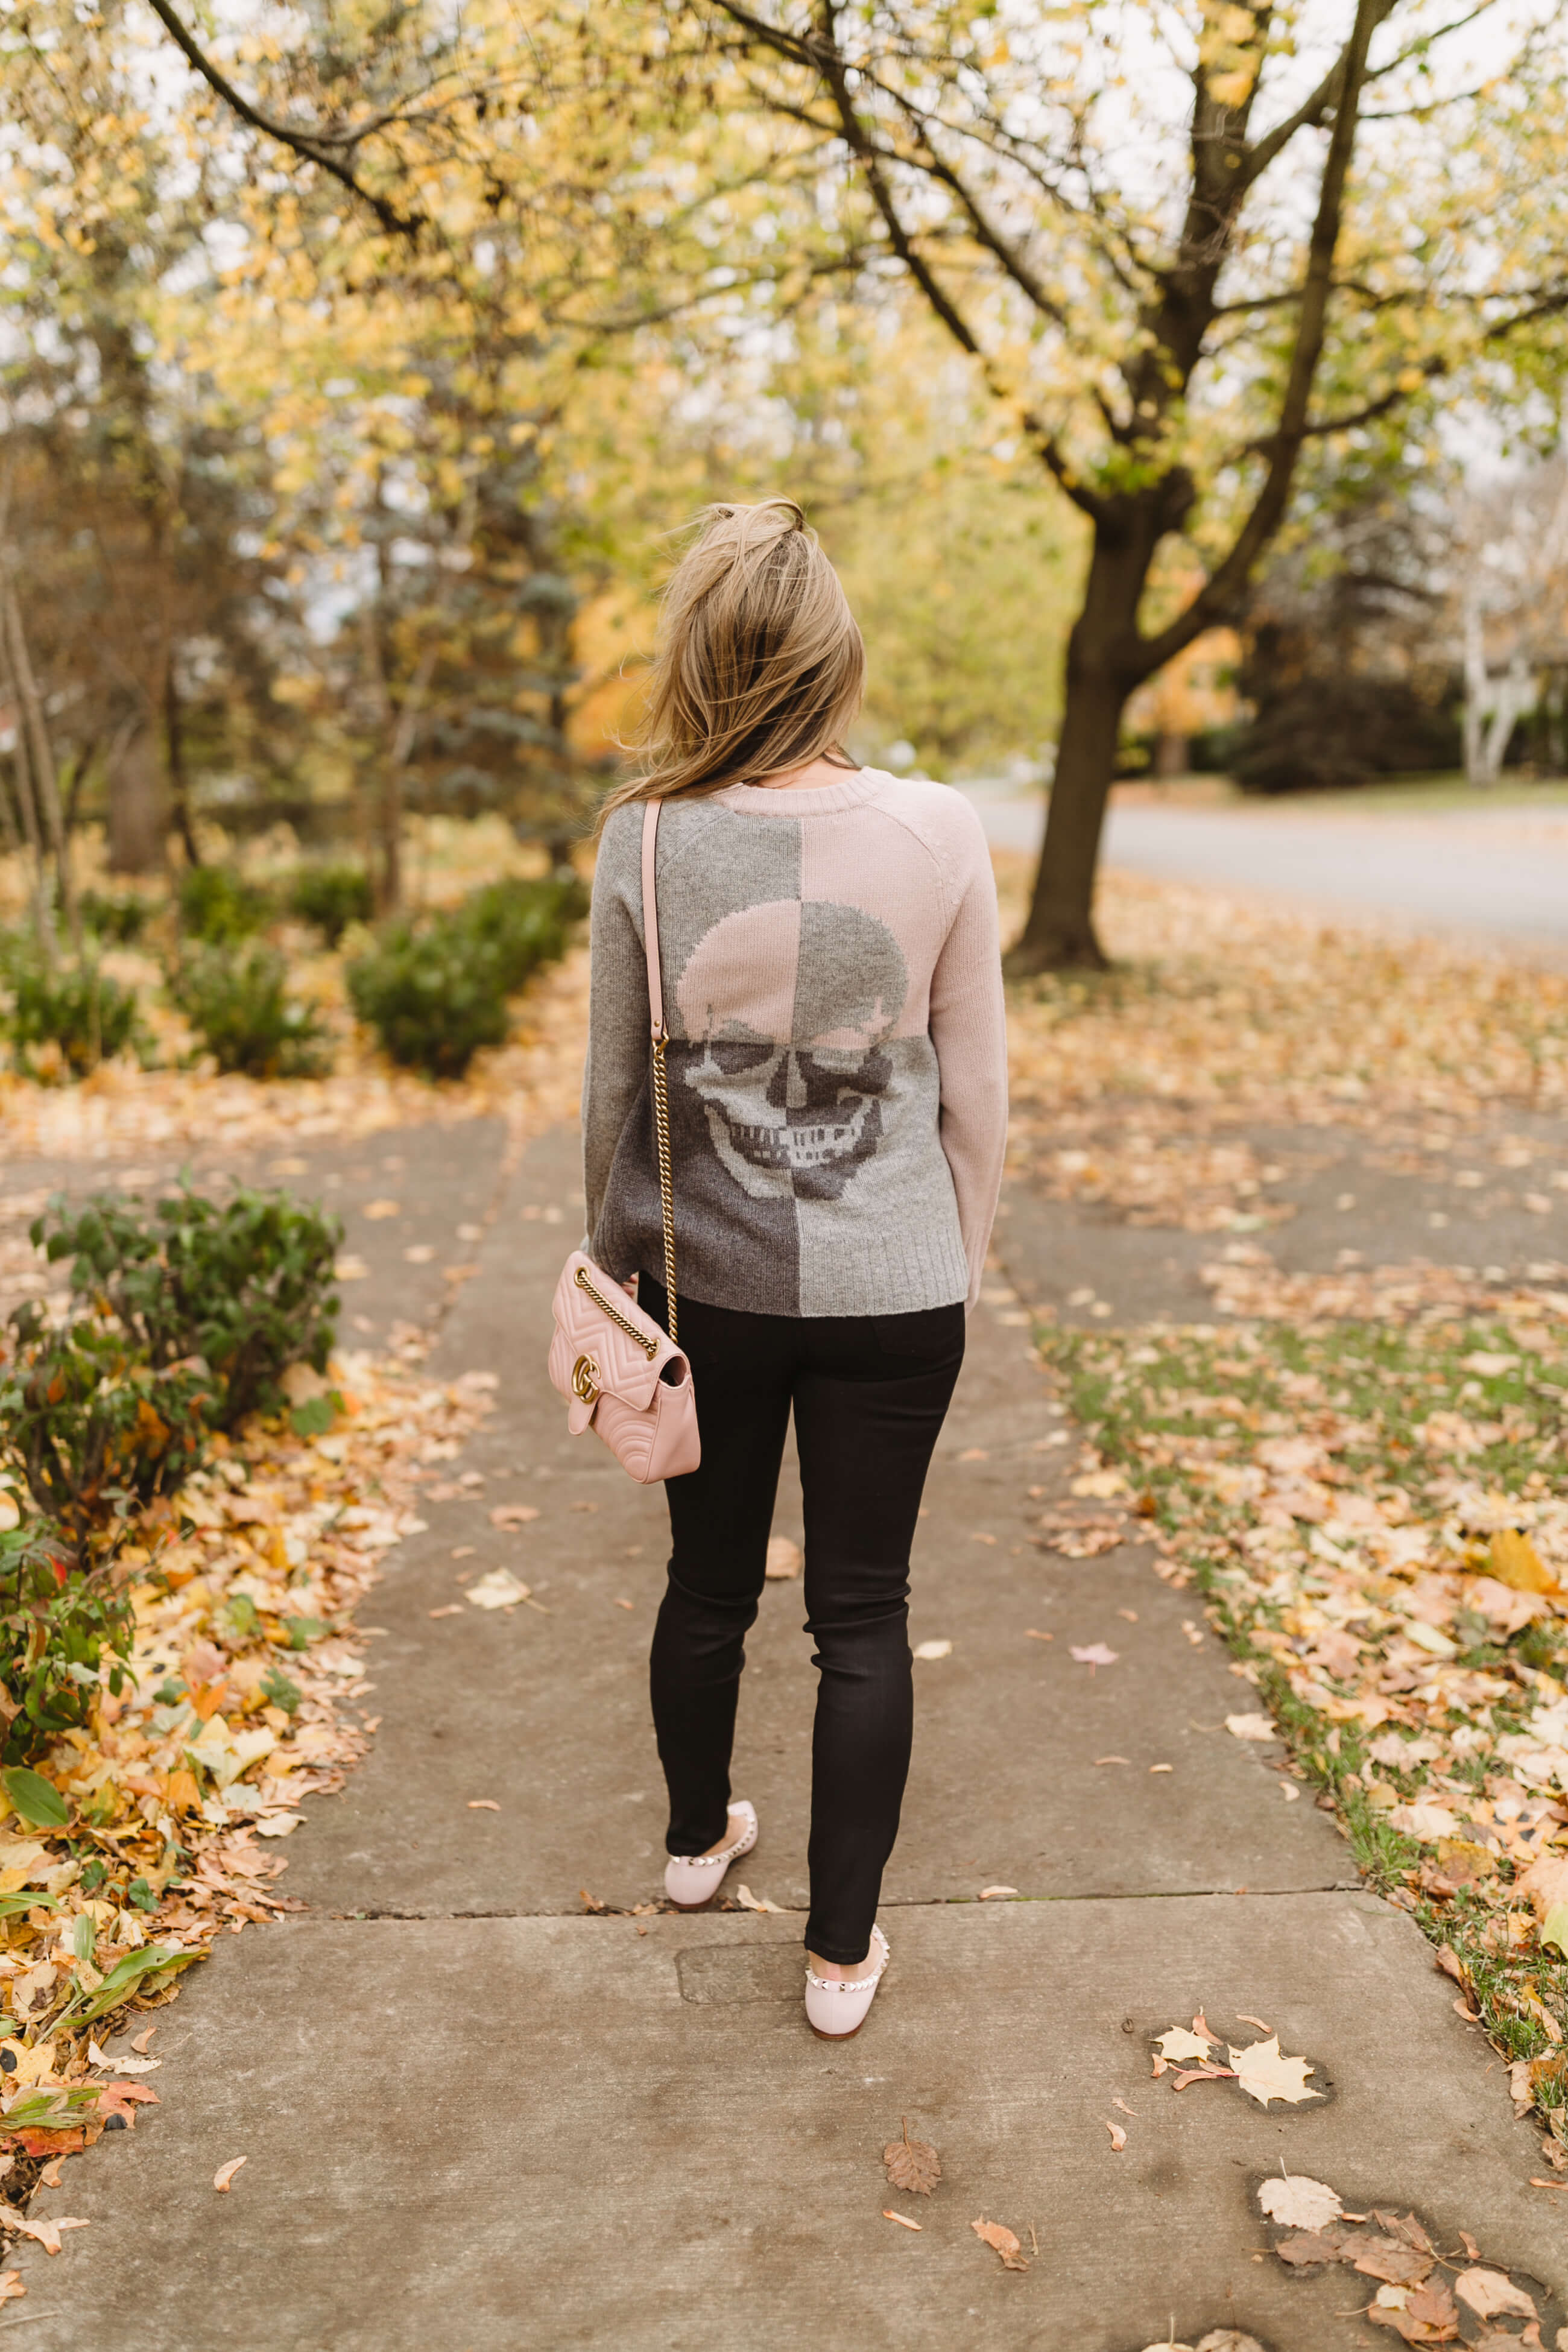 Garbo's Boutique outfits; durham Region shopping; skull sweater Mandy Furnis sparkleshinylove